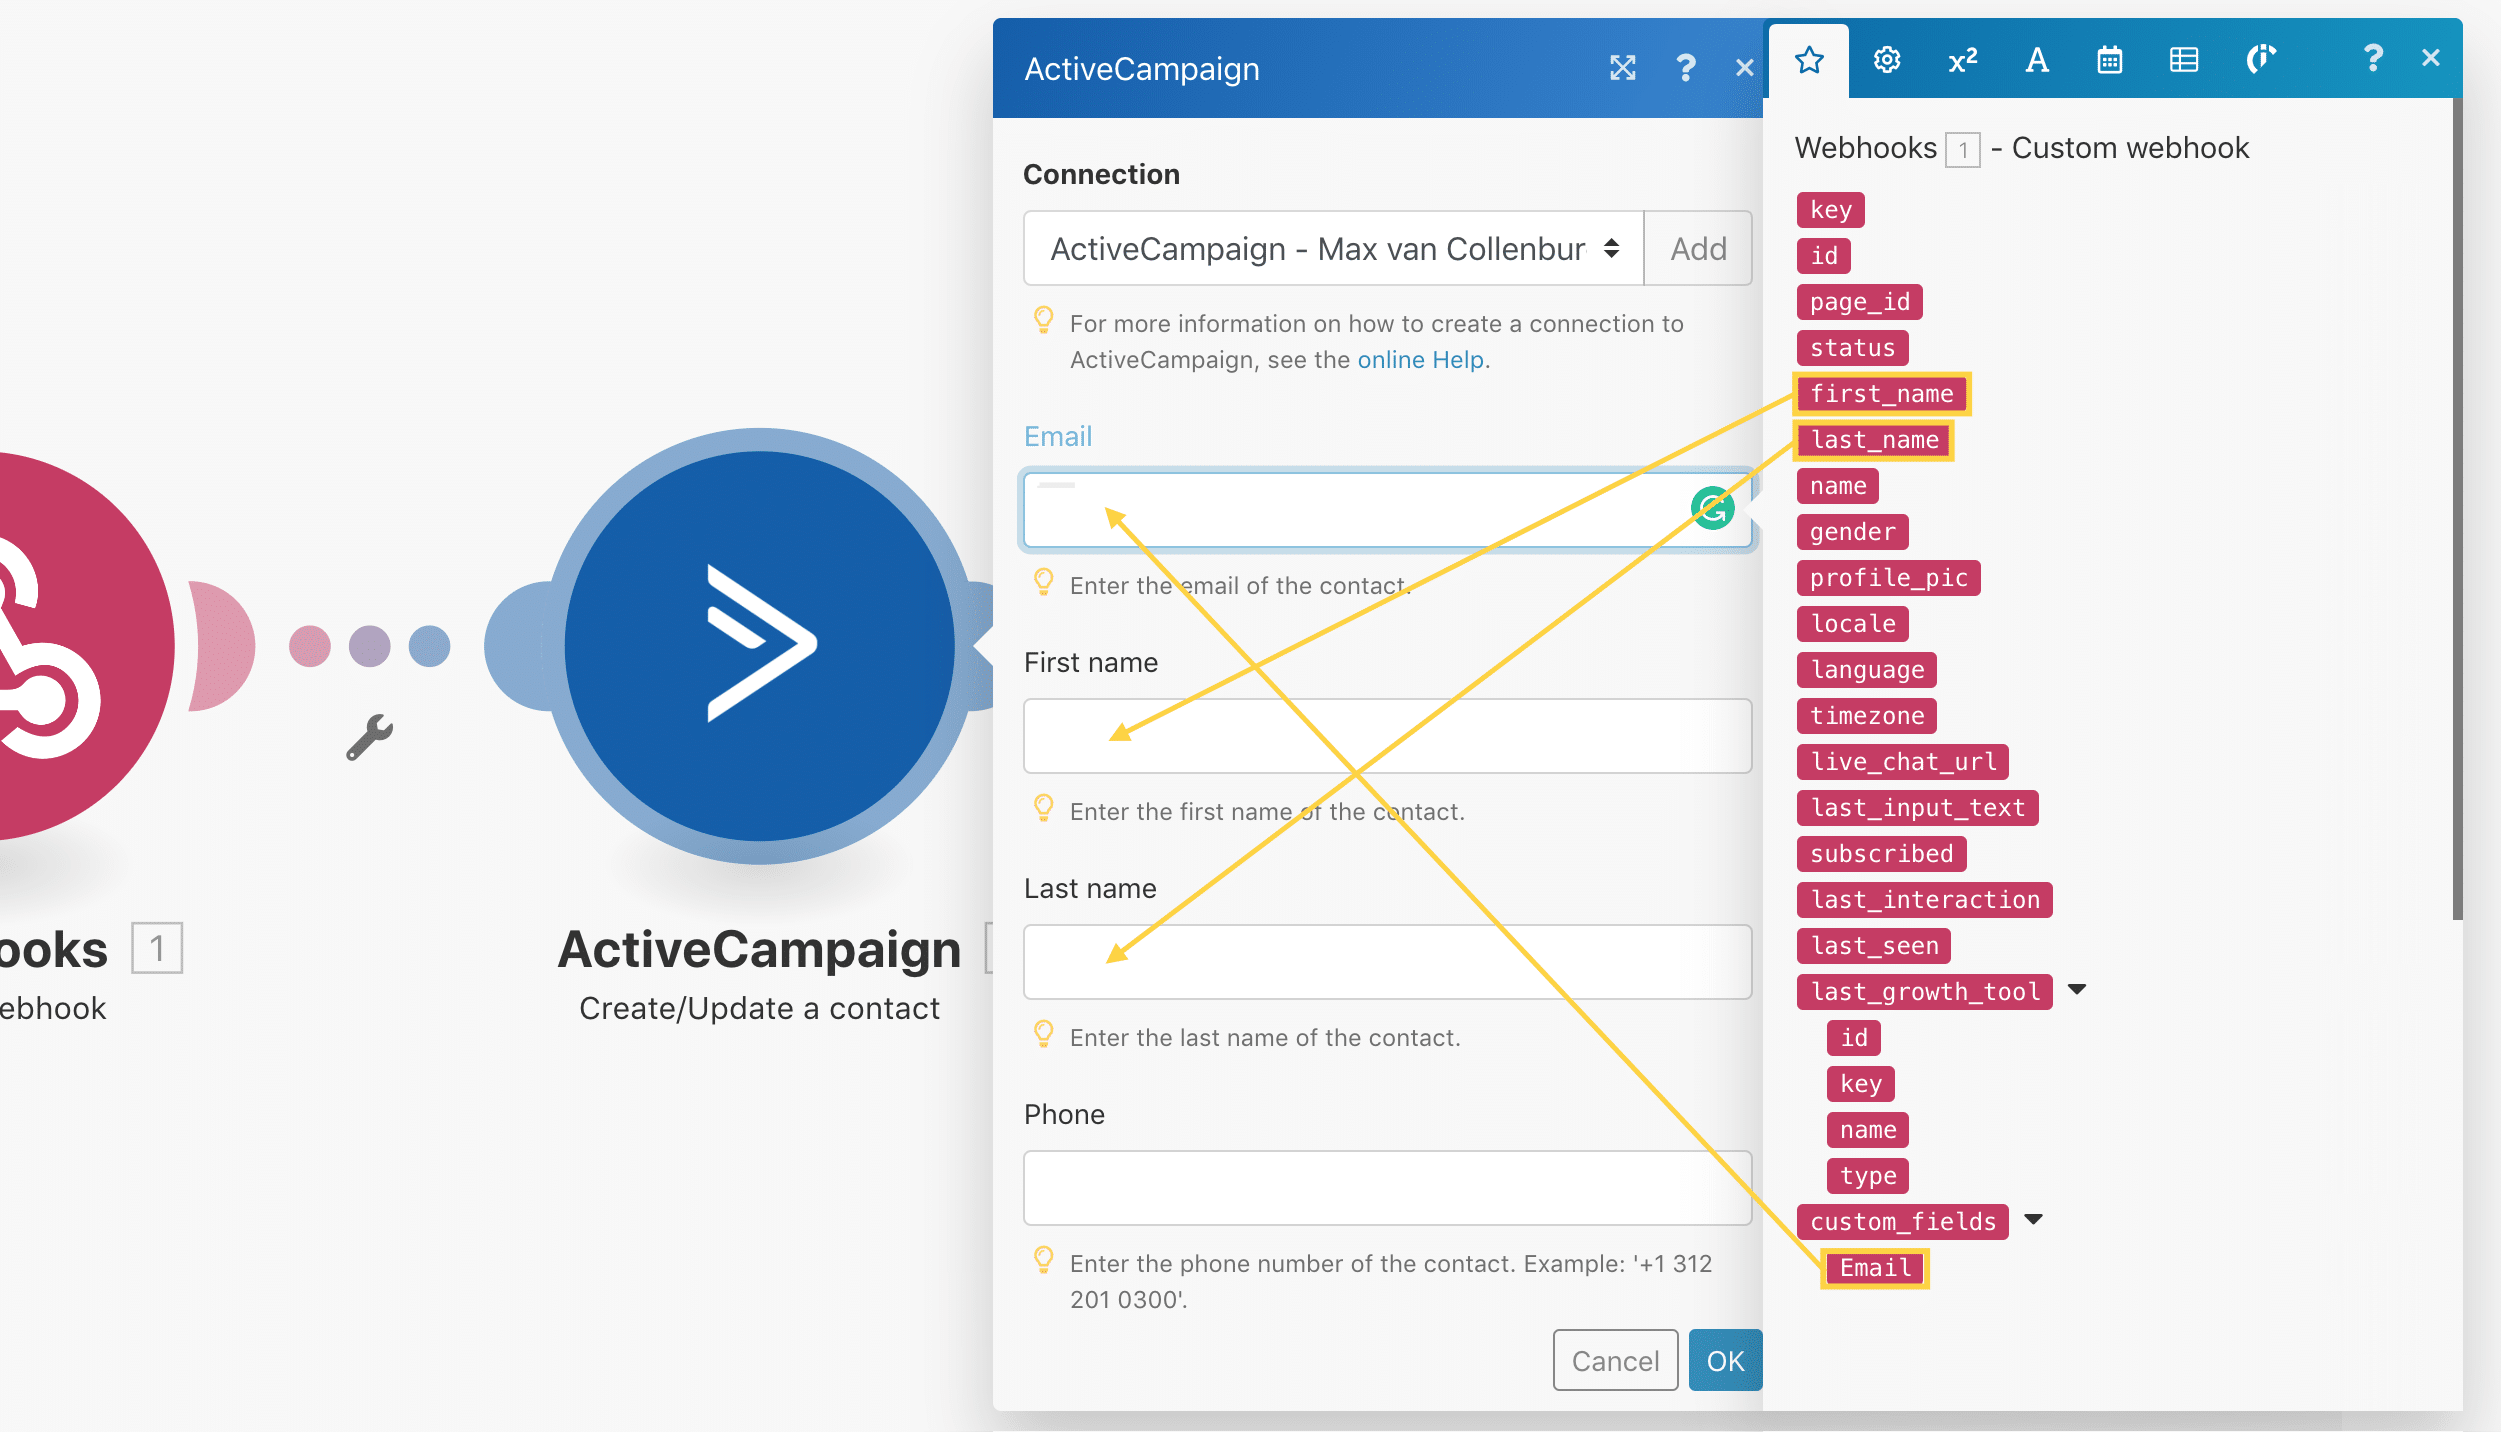 Add data to ActiveCampaign step